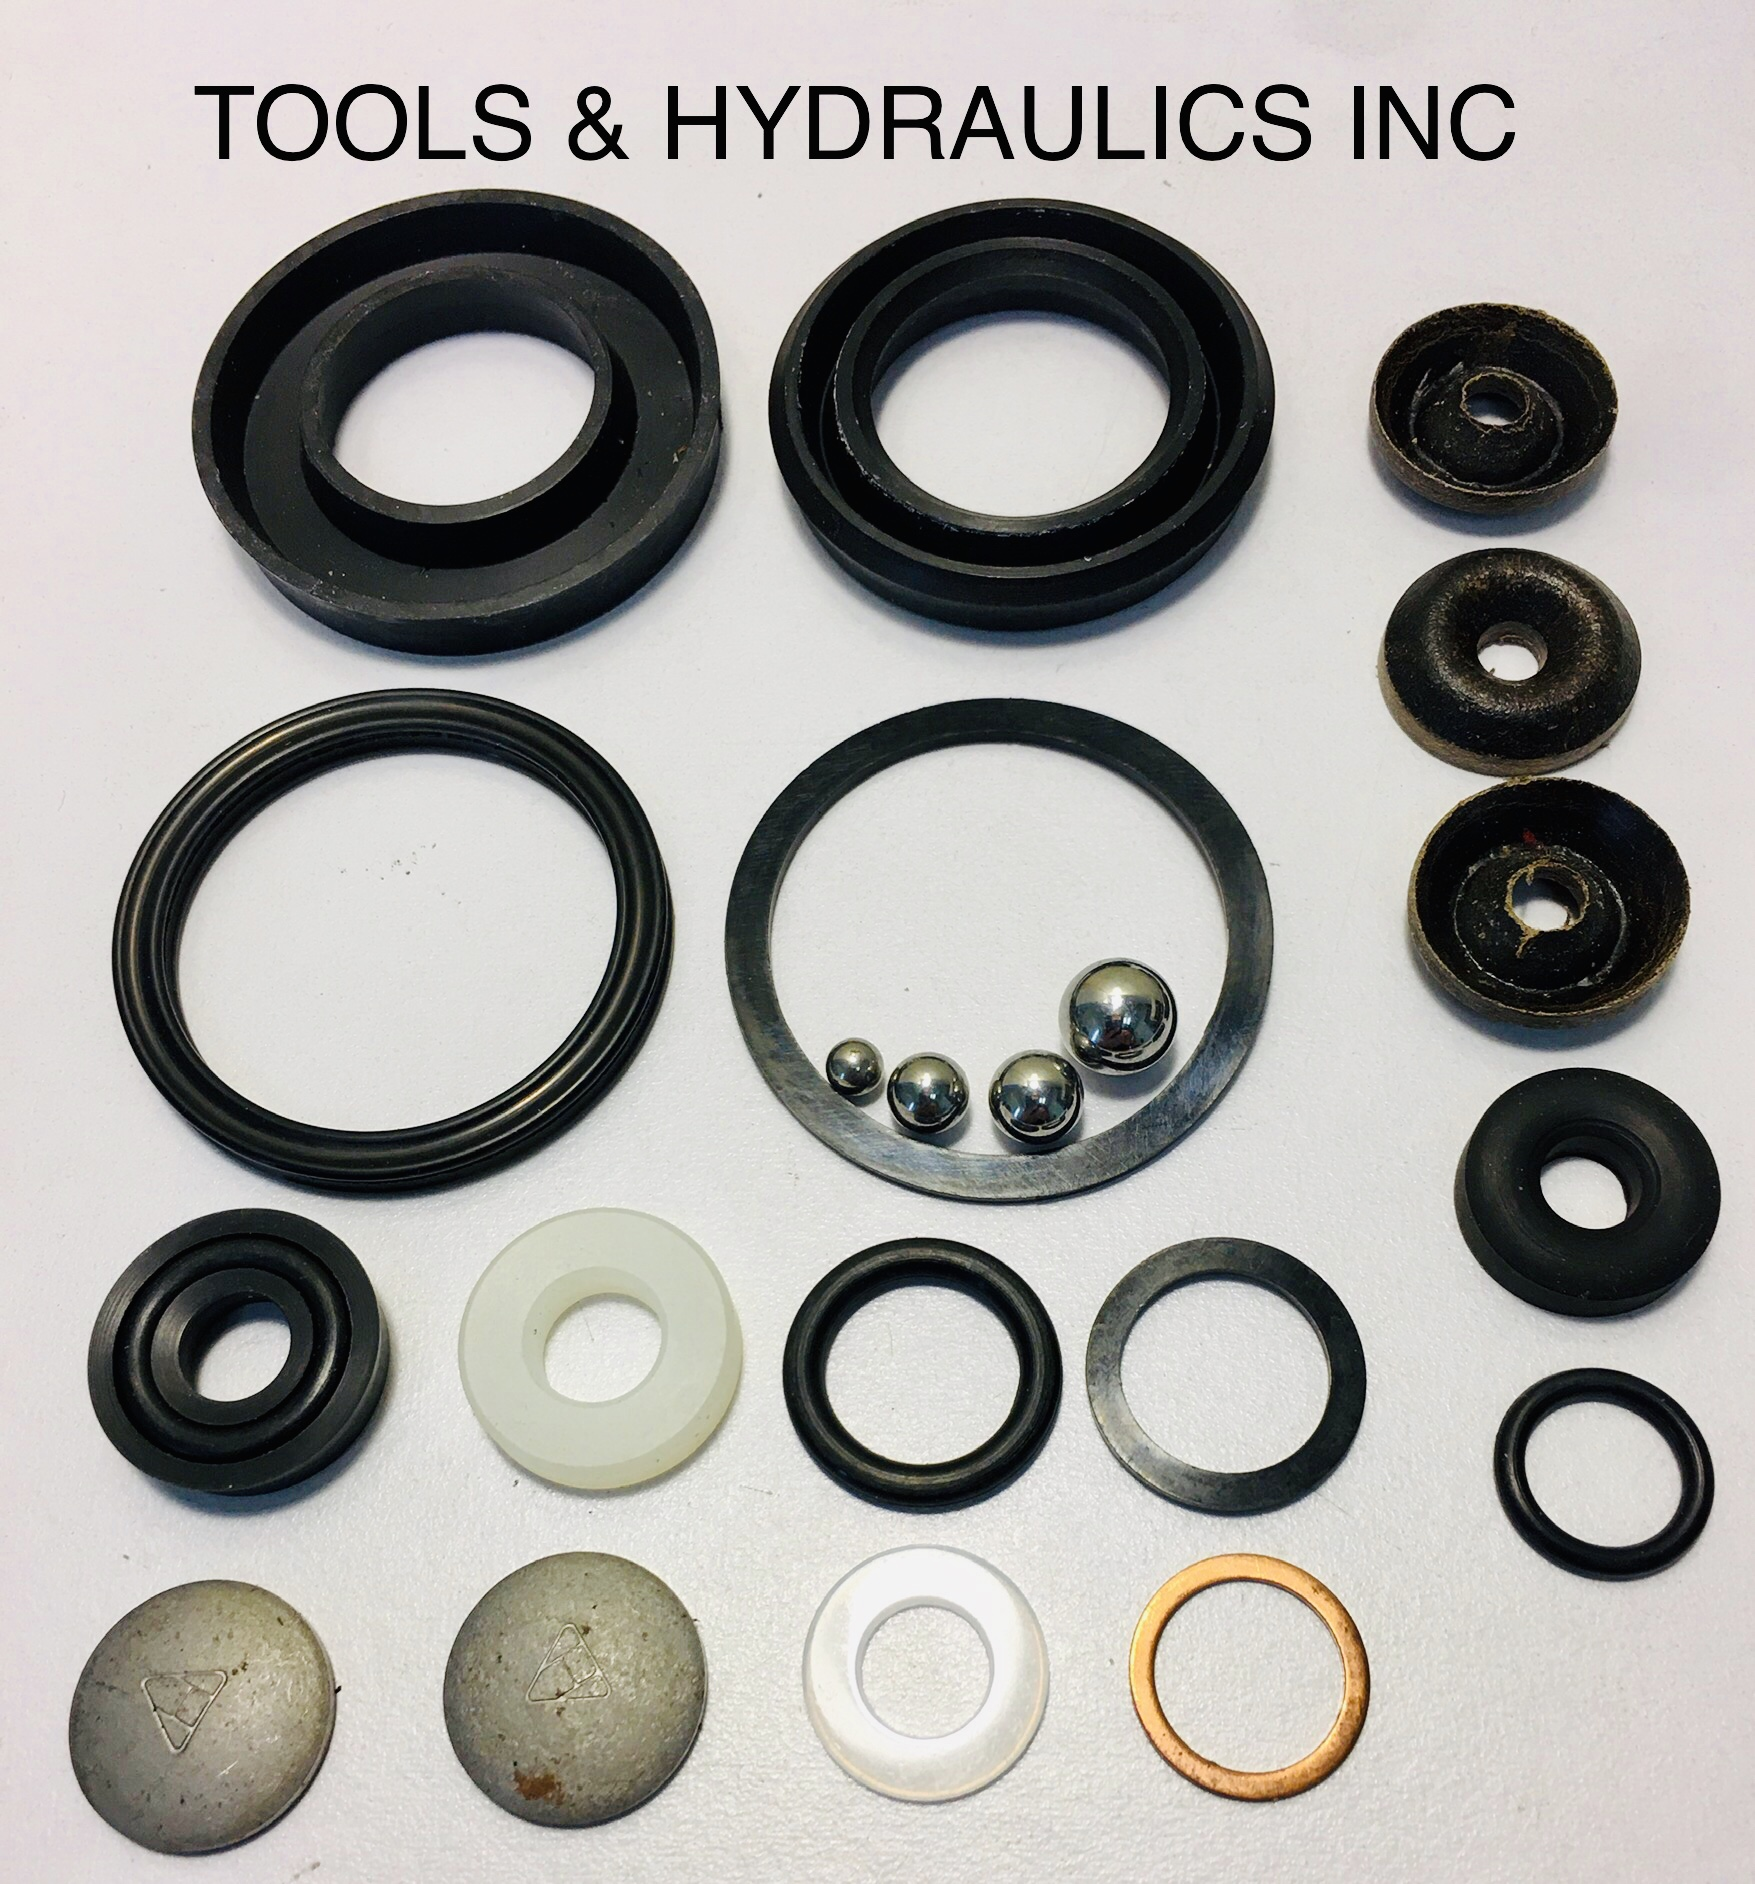 Fleet Napa Jack Repair Kits Hydraulic Floor Parts Diagram 91 630 B C D F G H Kit4480